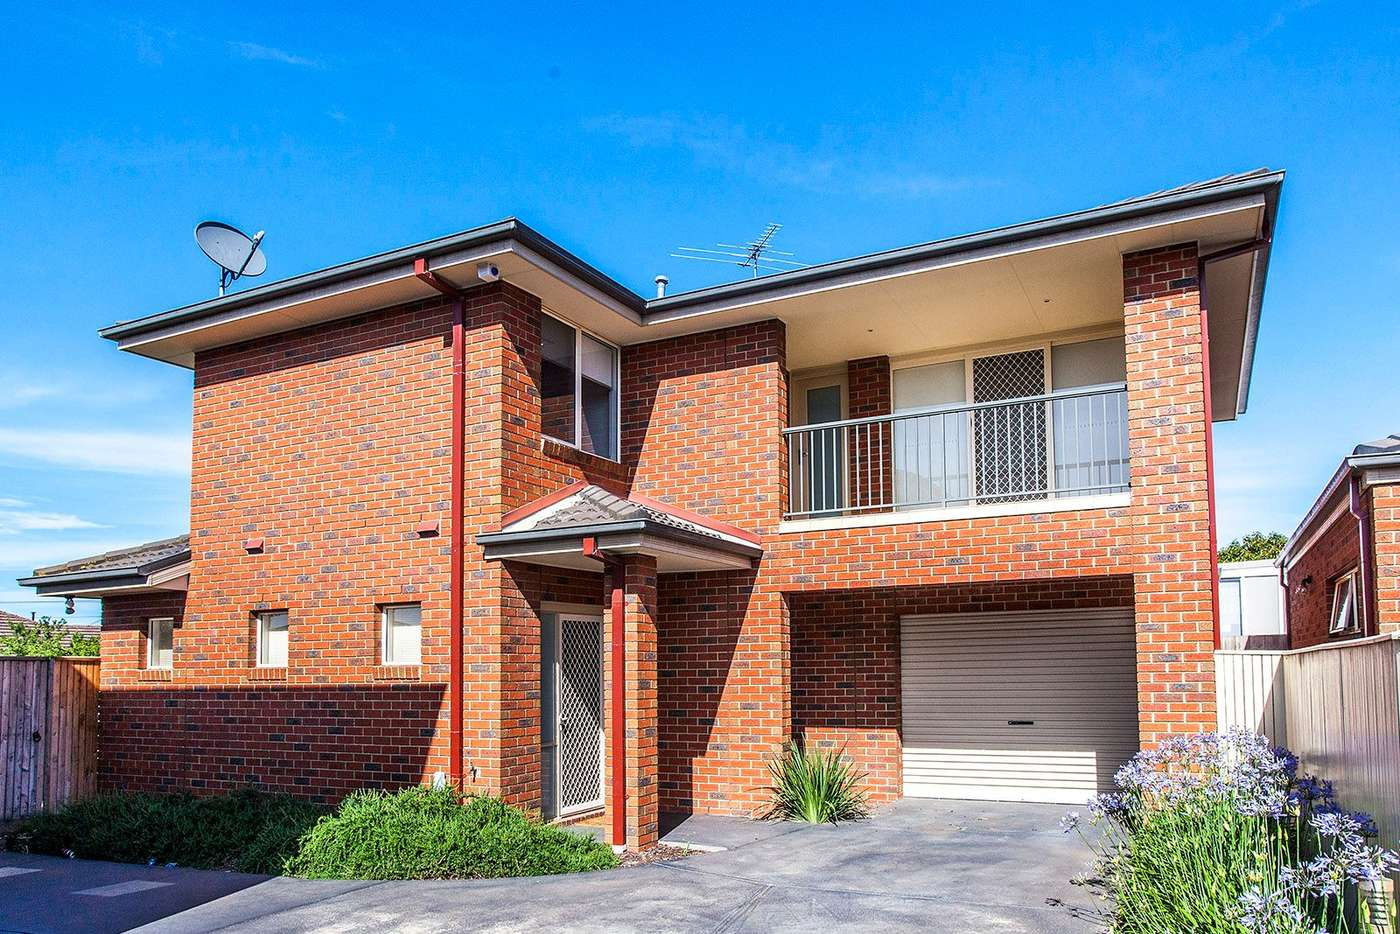 Main view of Homely house listing, 3/38-40 Kemp Street, Springvale VIC 3171